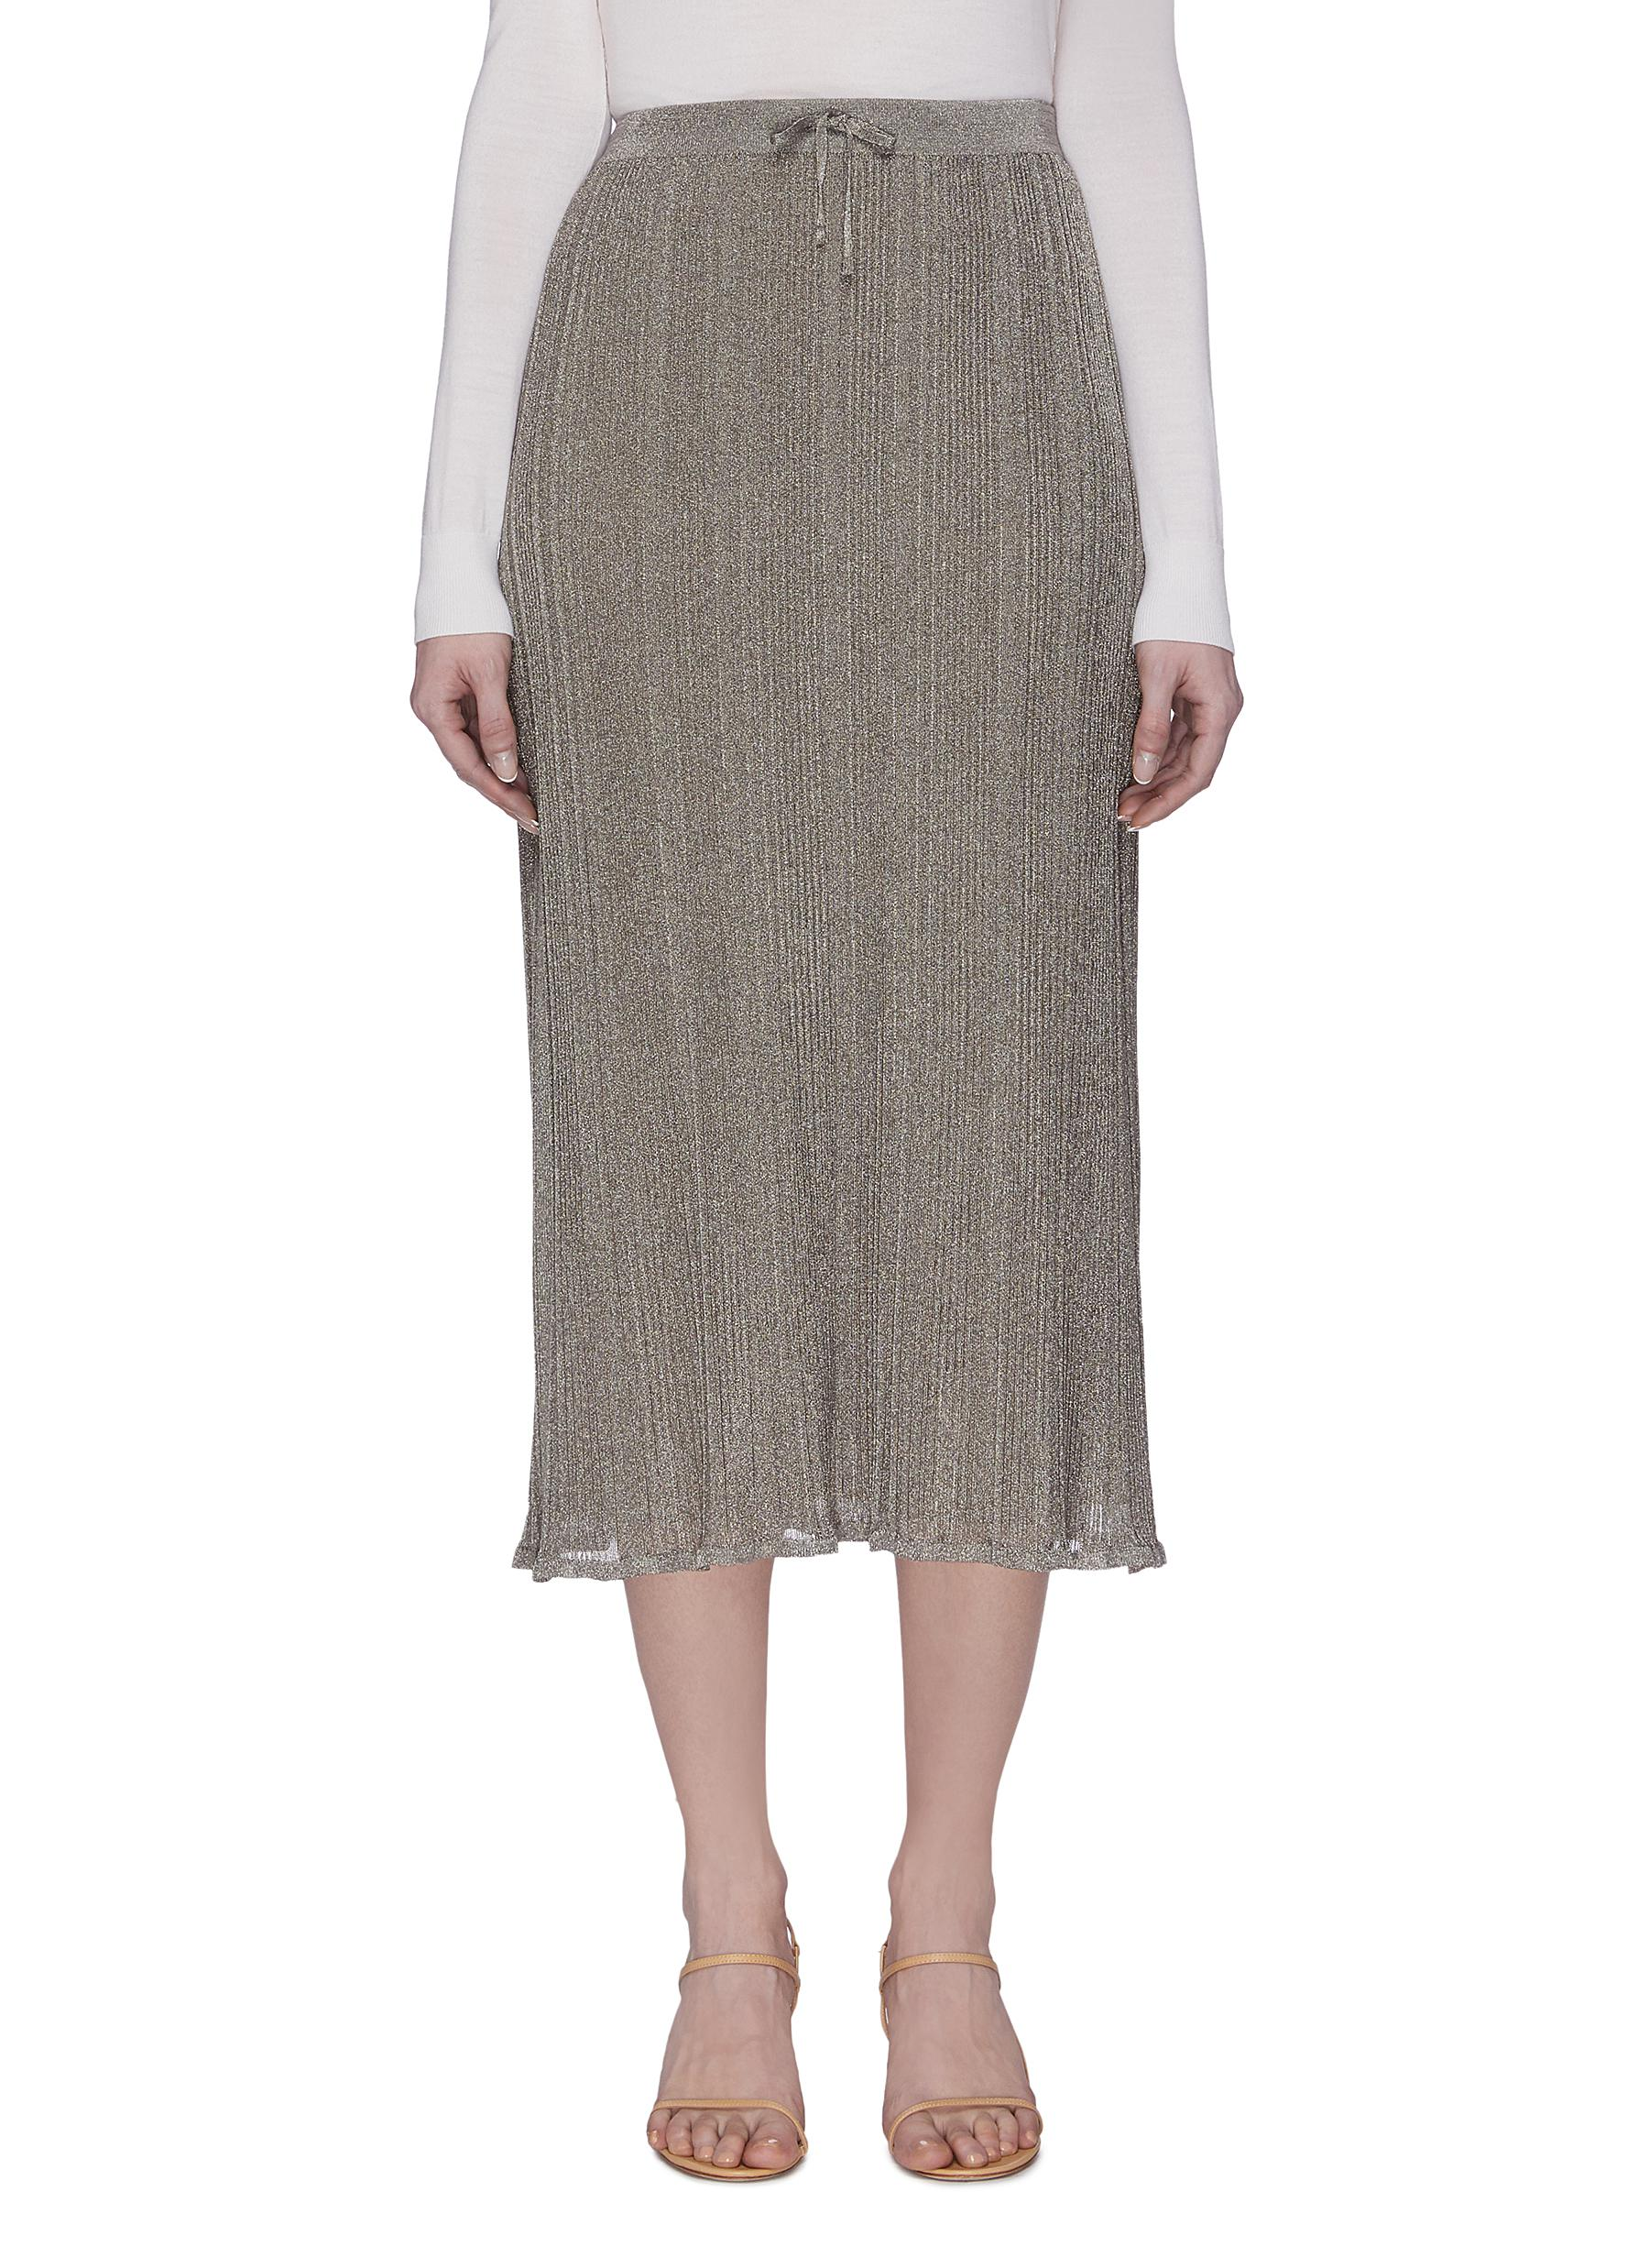 Buy The Row Skirts 'Marin' Sheer Metallic Maxi Skirt